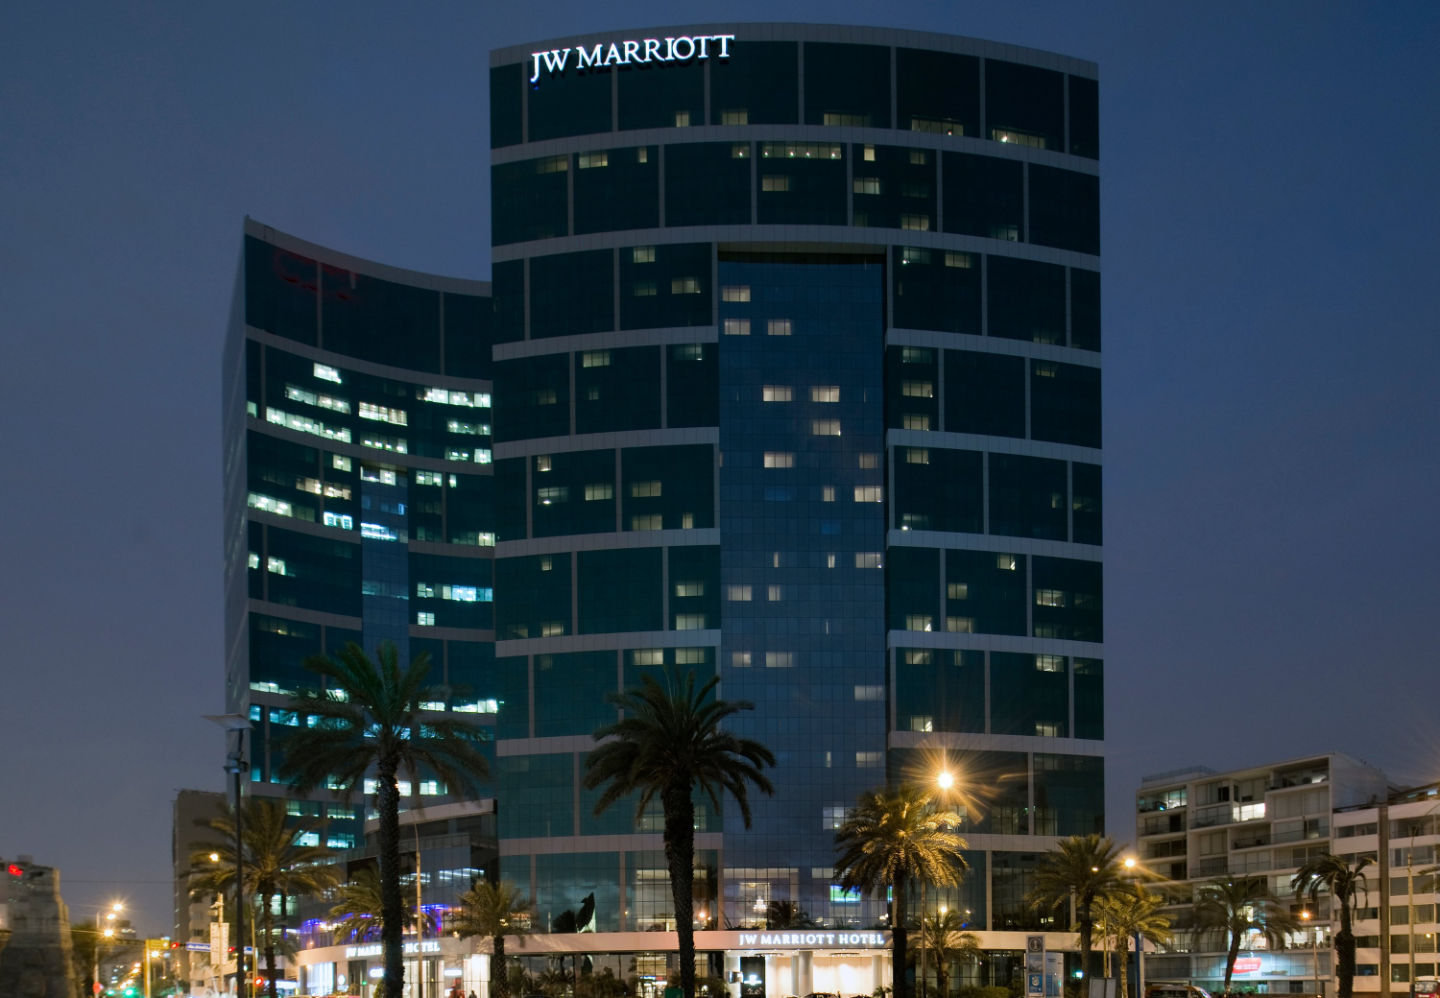 JW Marriott Hotel Lima, na capital peruana